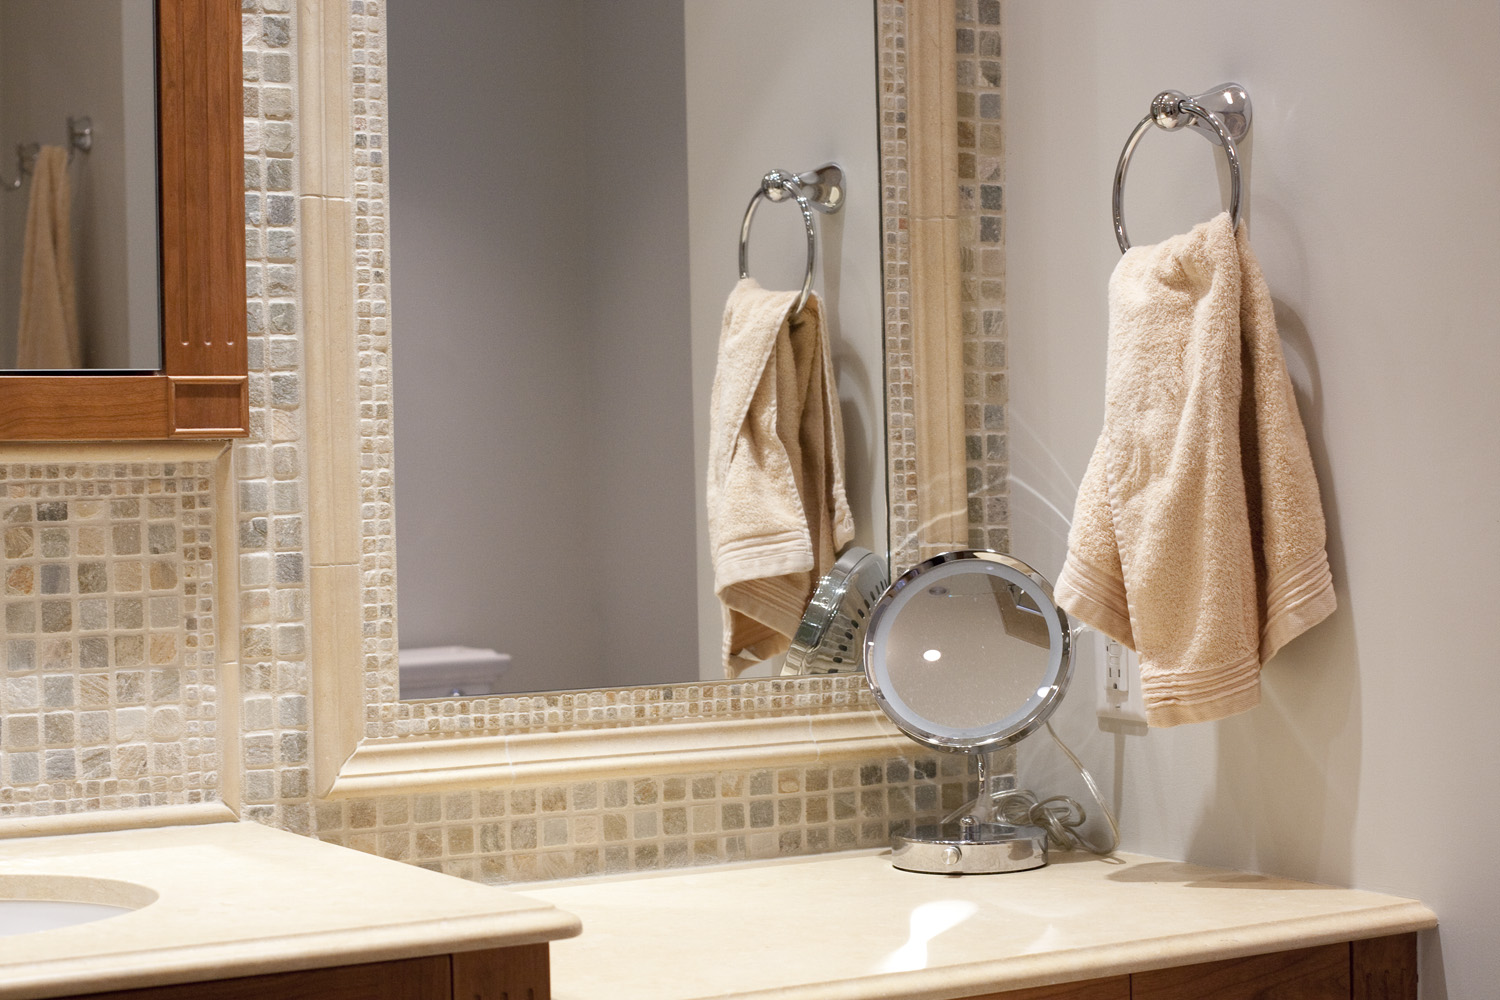 Stone Framed Bathroom Mirrors 30 Ideas Of Mosaic Tile Framed Bathroom Mirrors